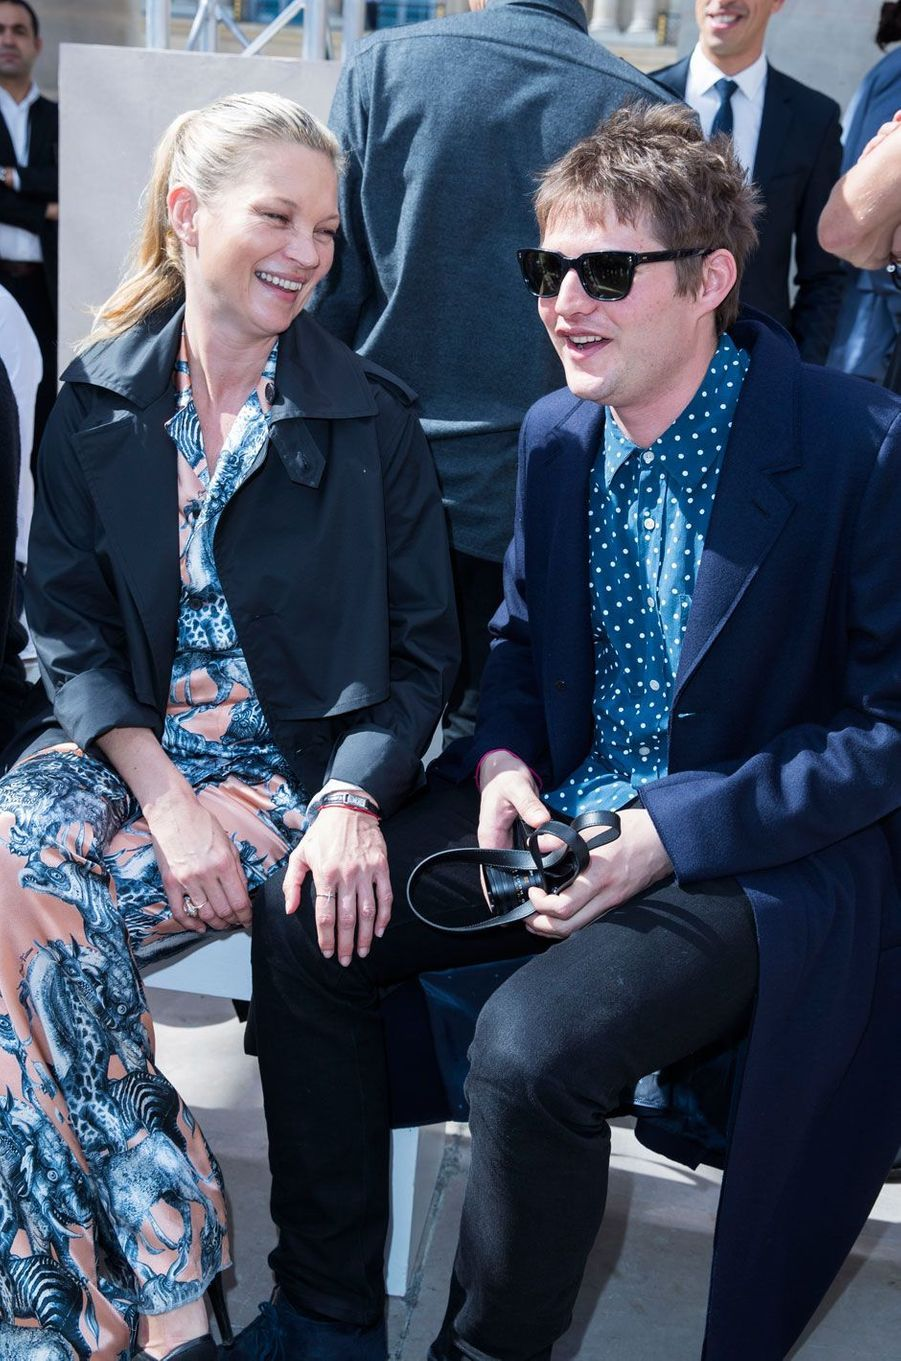 Kate Moss et Nikolaï Von Bismarck au défilé Louis Vuitton à Paris, Fashion Week Homme 2016